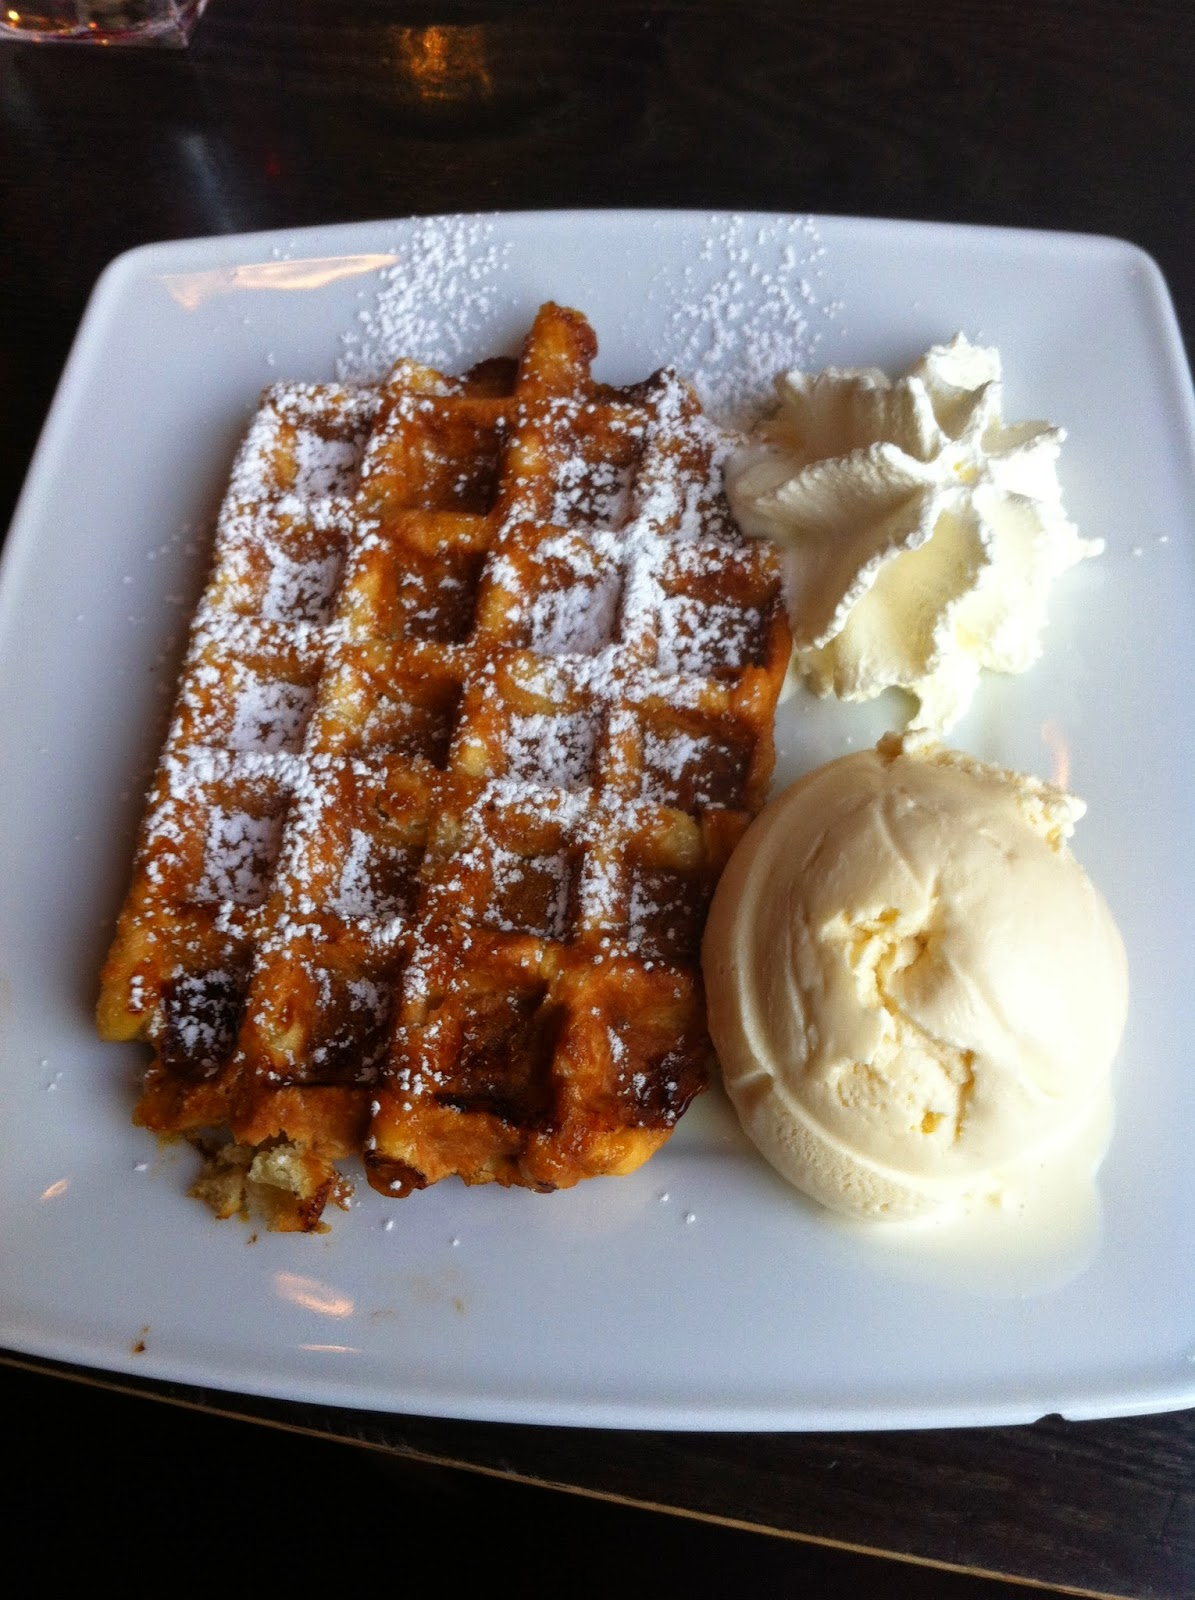 Belgian Waffle and Ice Cream